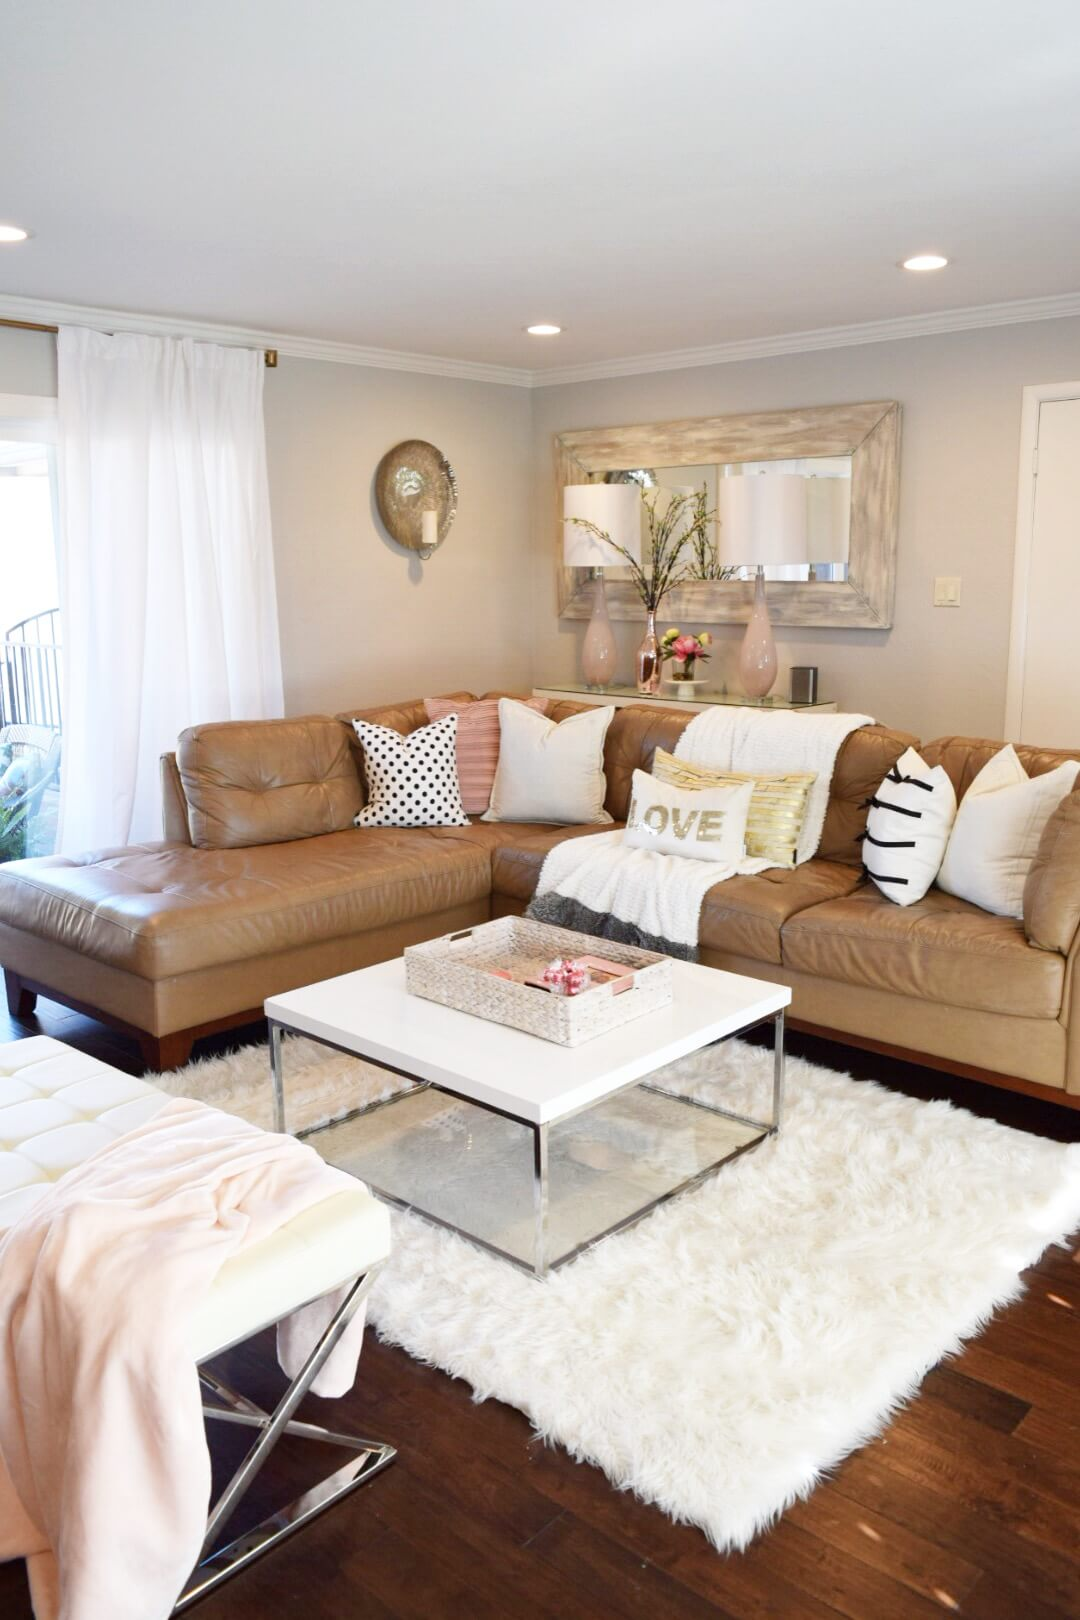 wall sofa cream sofas cheap 30 best decoration ideas above the for 2019 palatial style mounted mirror